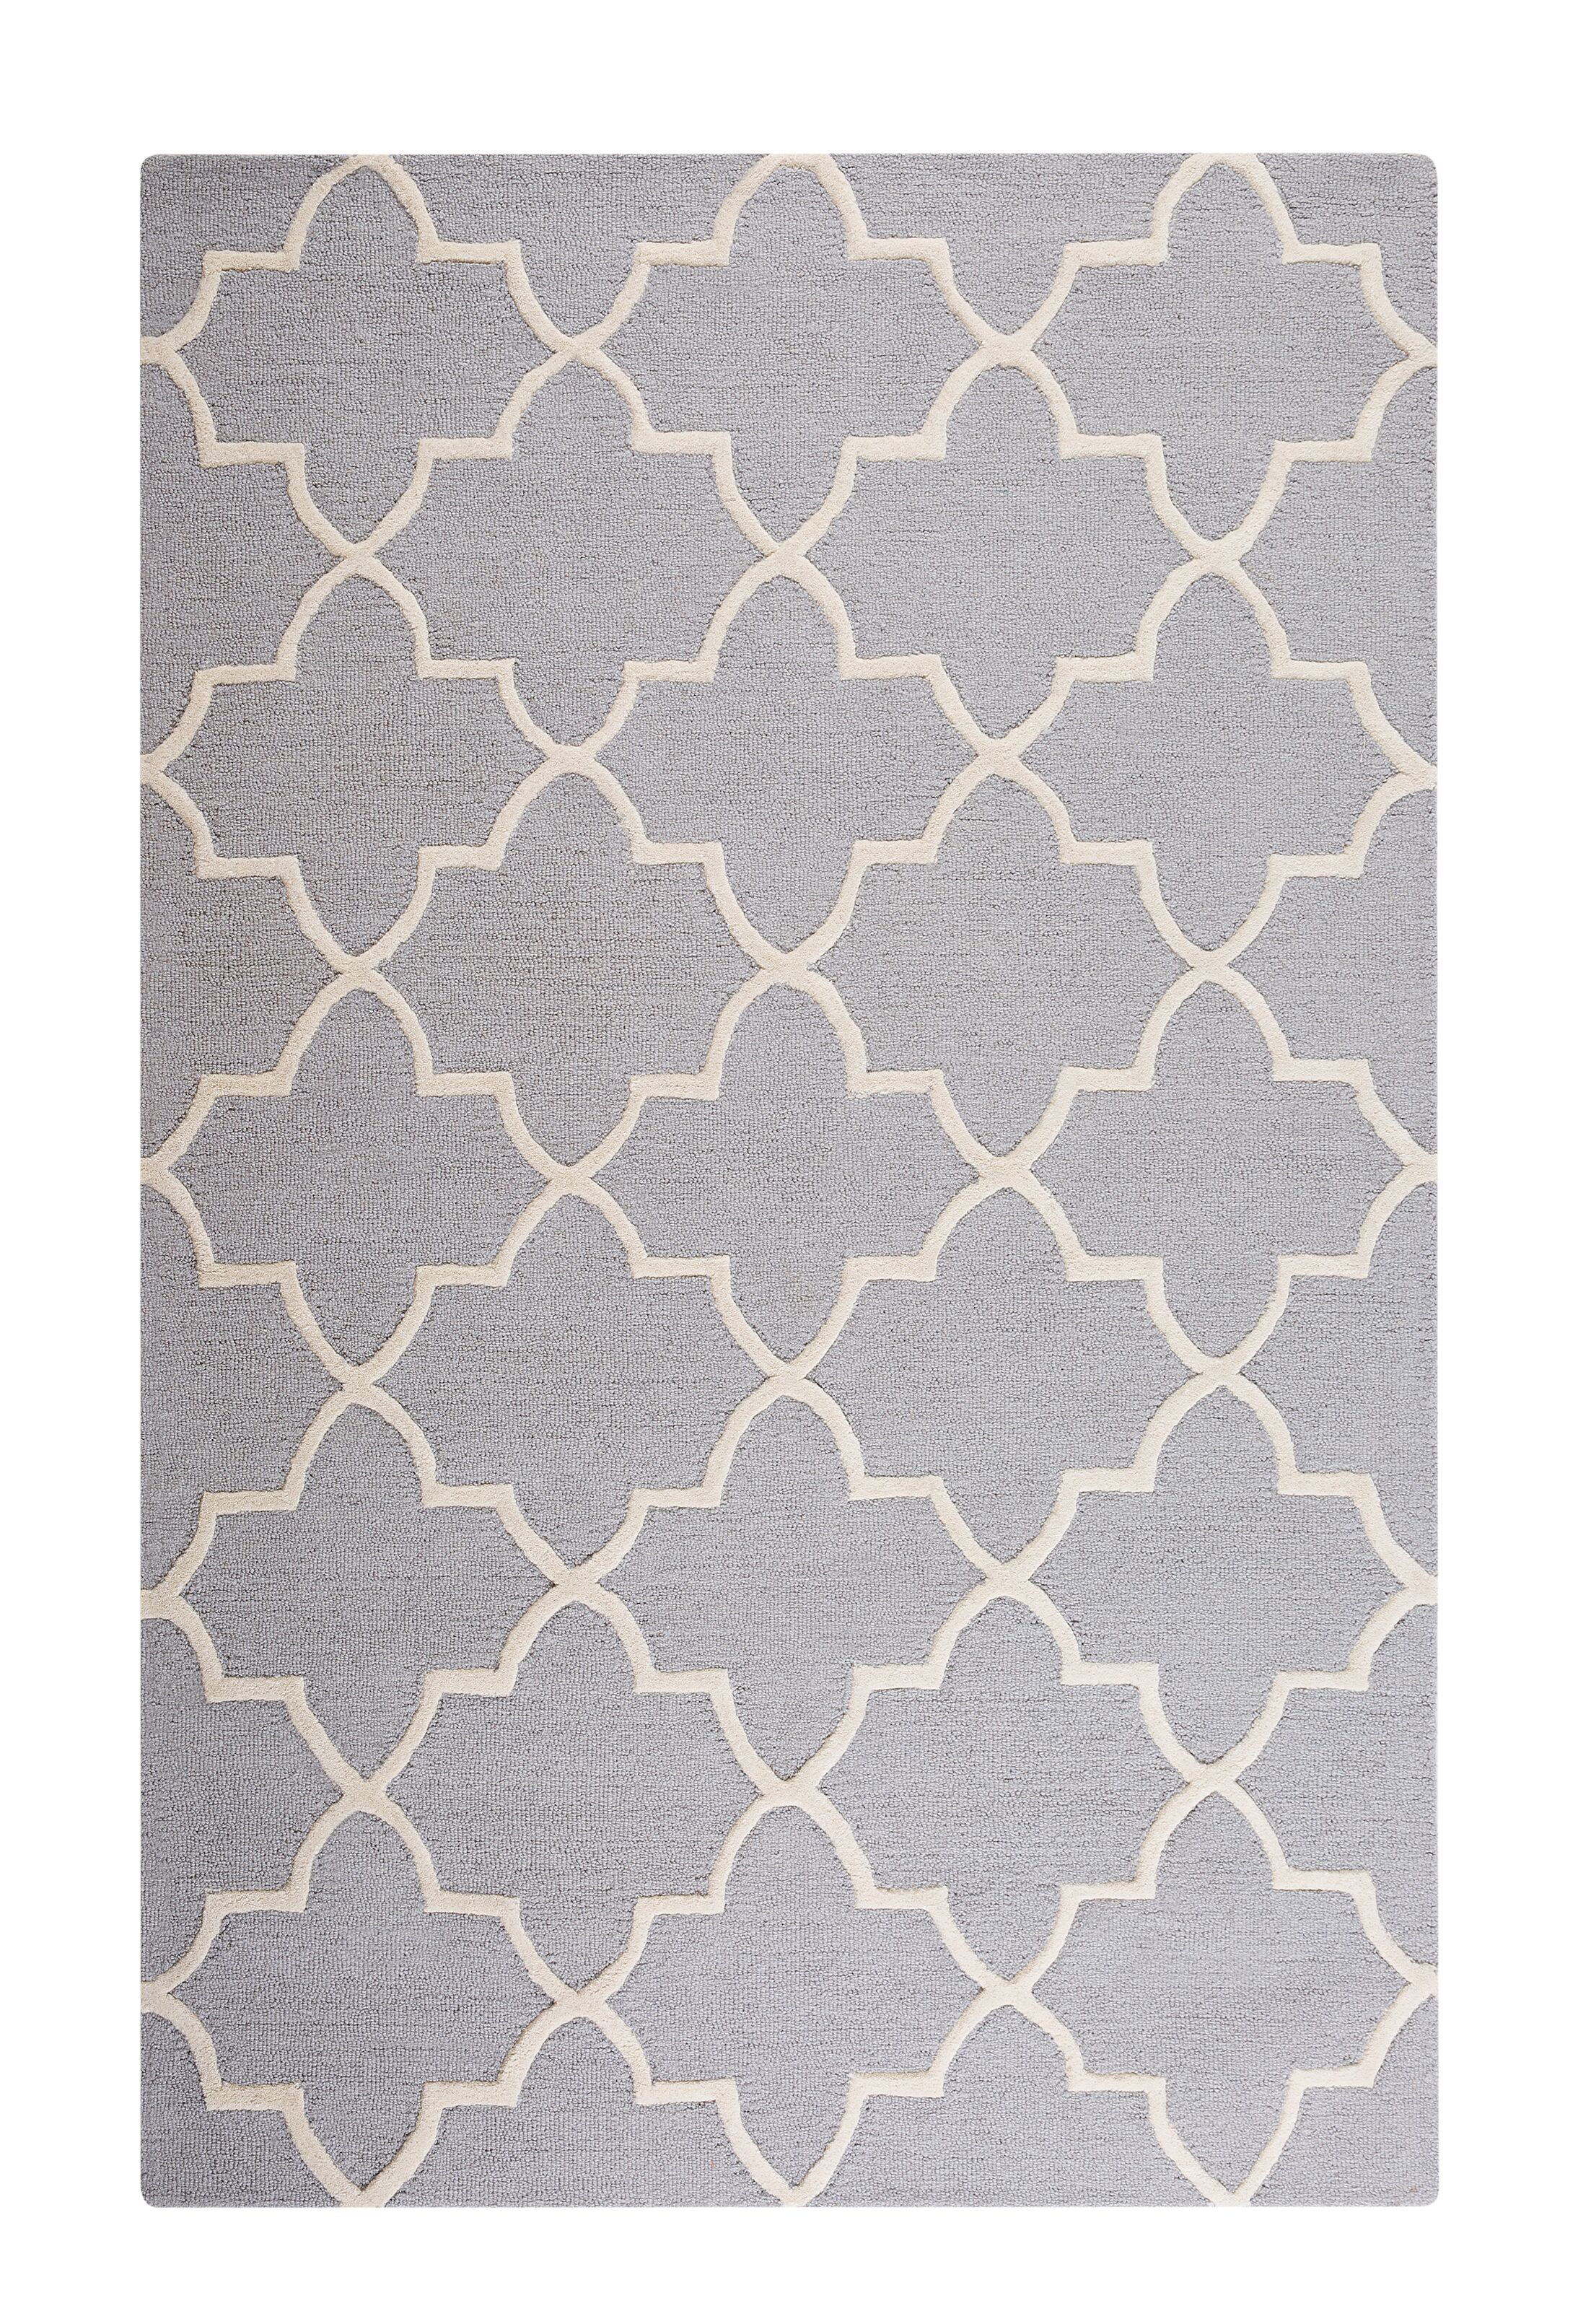 Silvan Hand-Tufted Gray Area Rug Rug Size: Rectangle 5'3